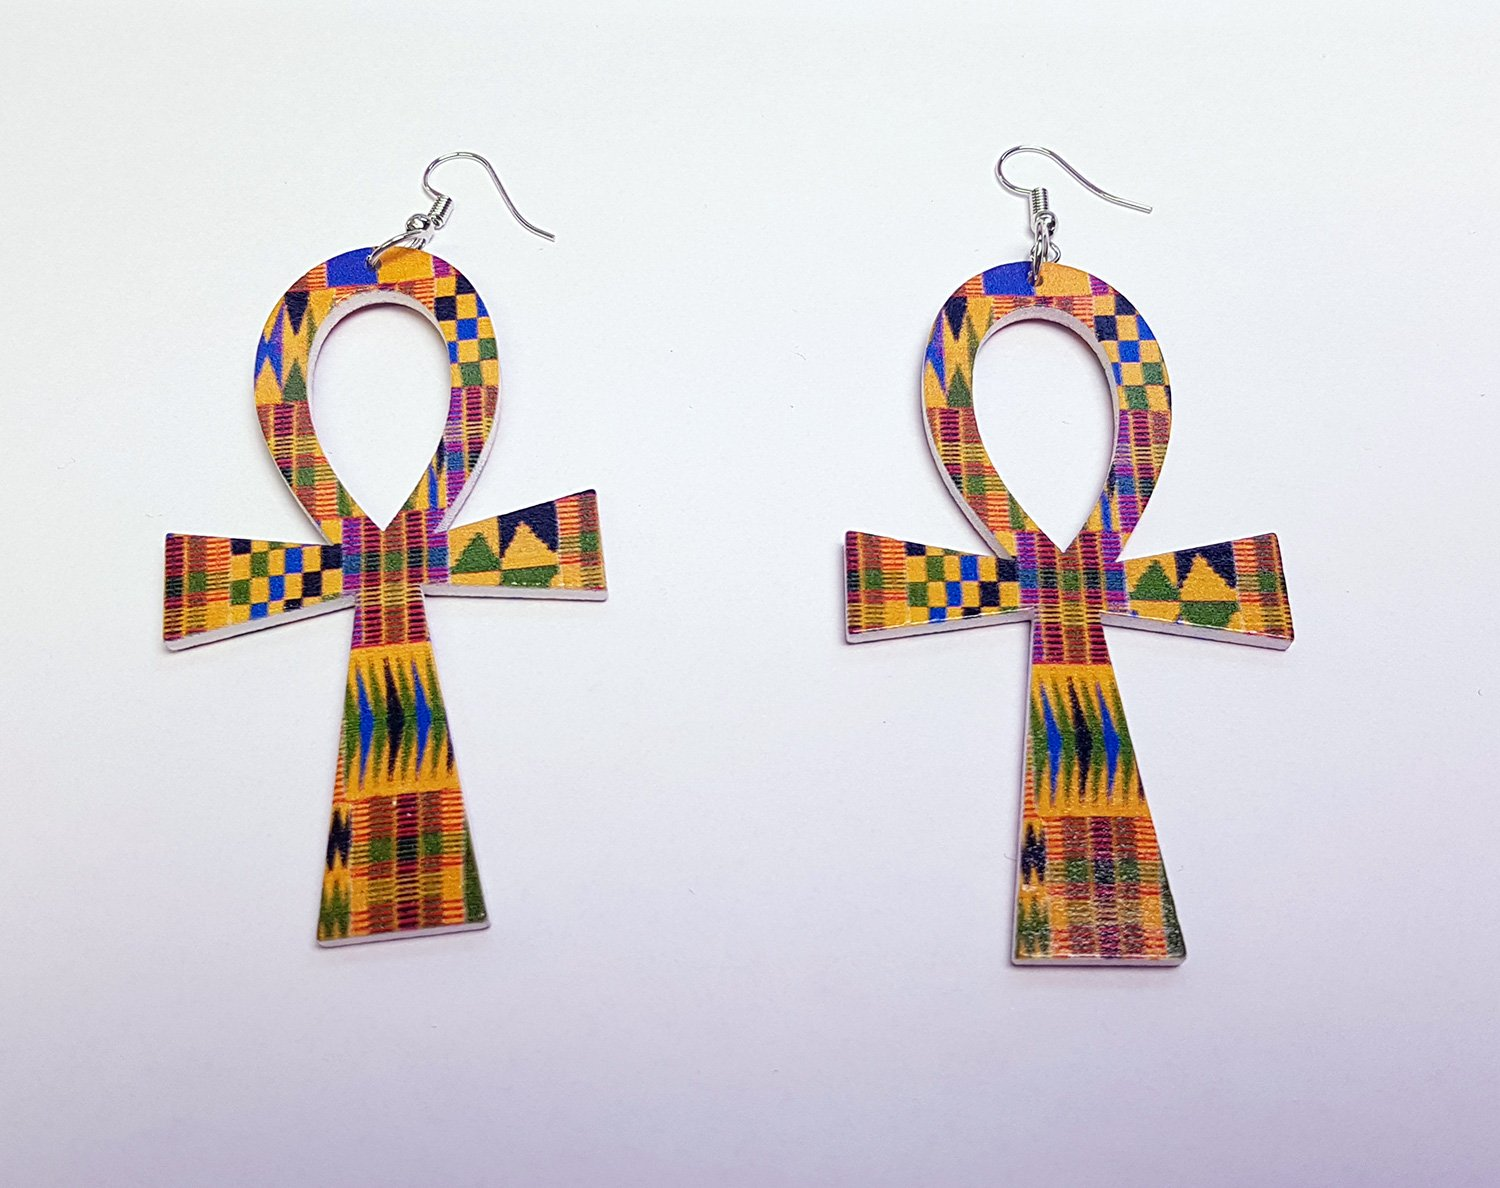 Ankh shaped wooden African Earrings with Print - Kente